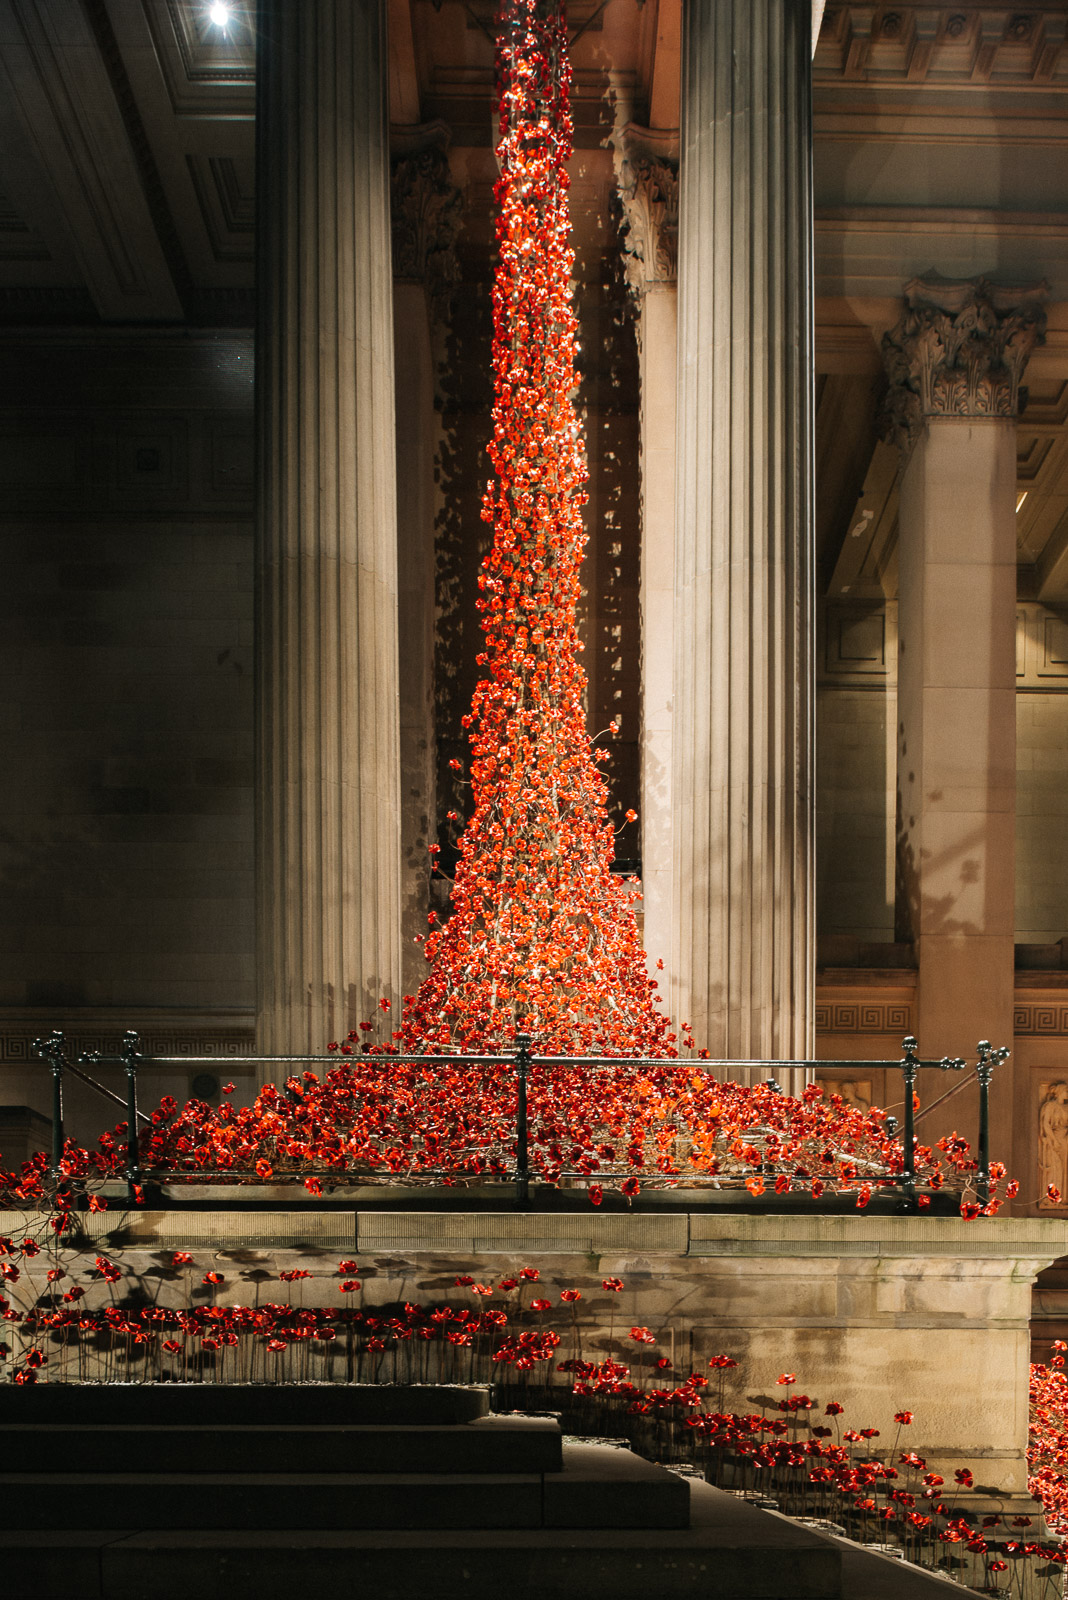 poppies-st-georges-hall-liverpool-3180-pete-carr